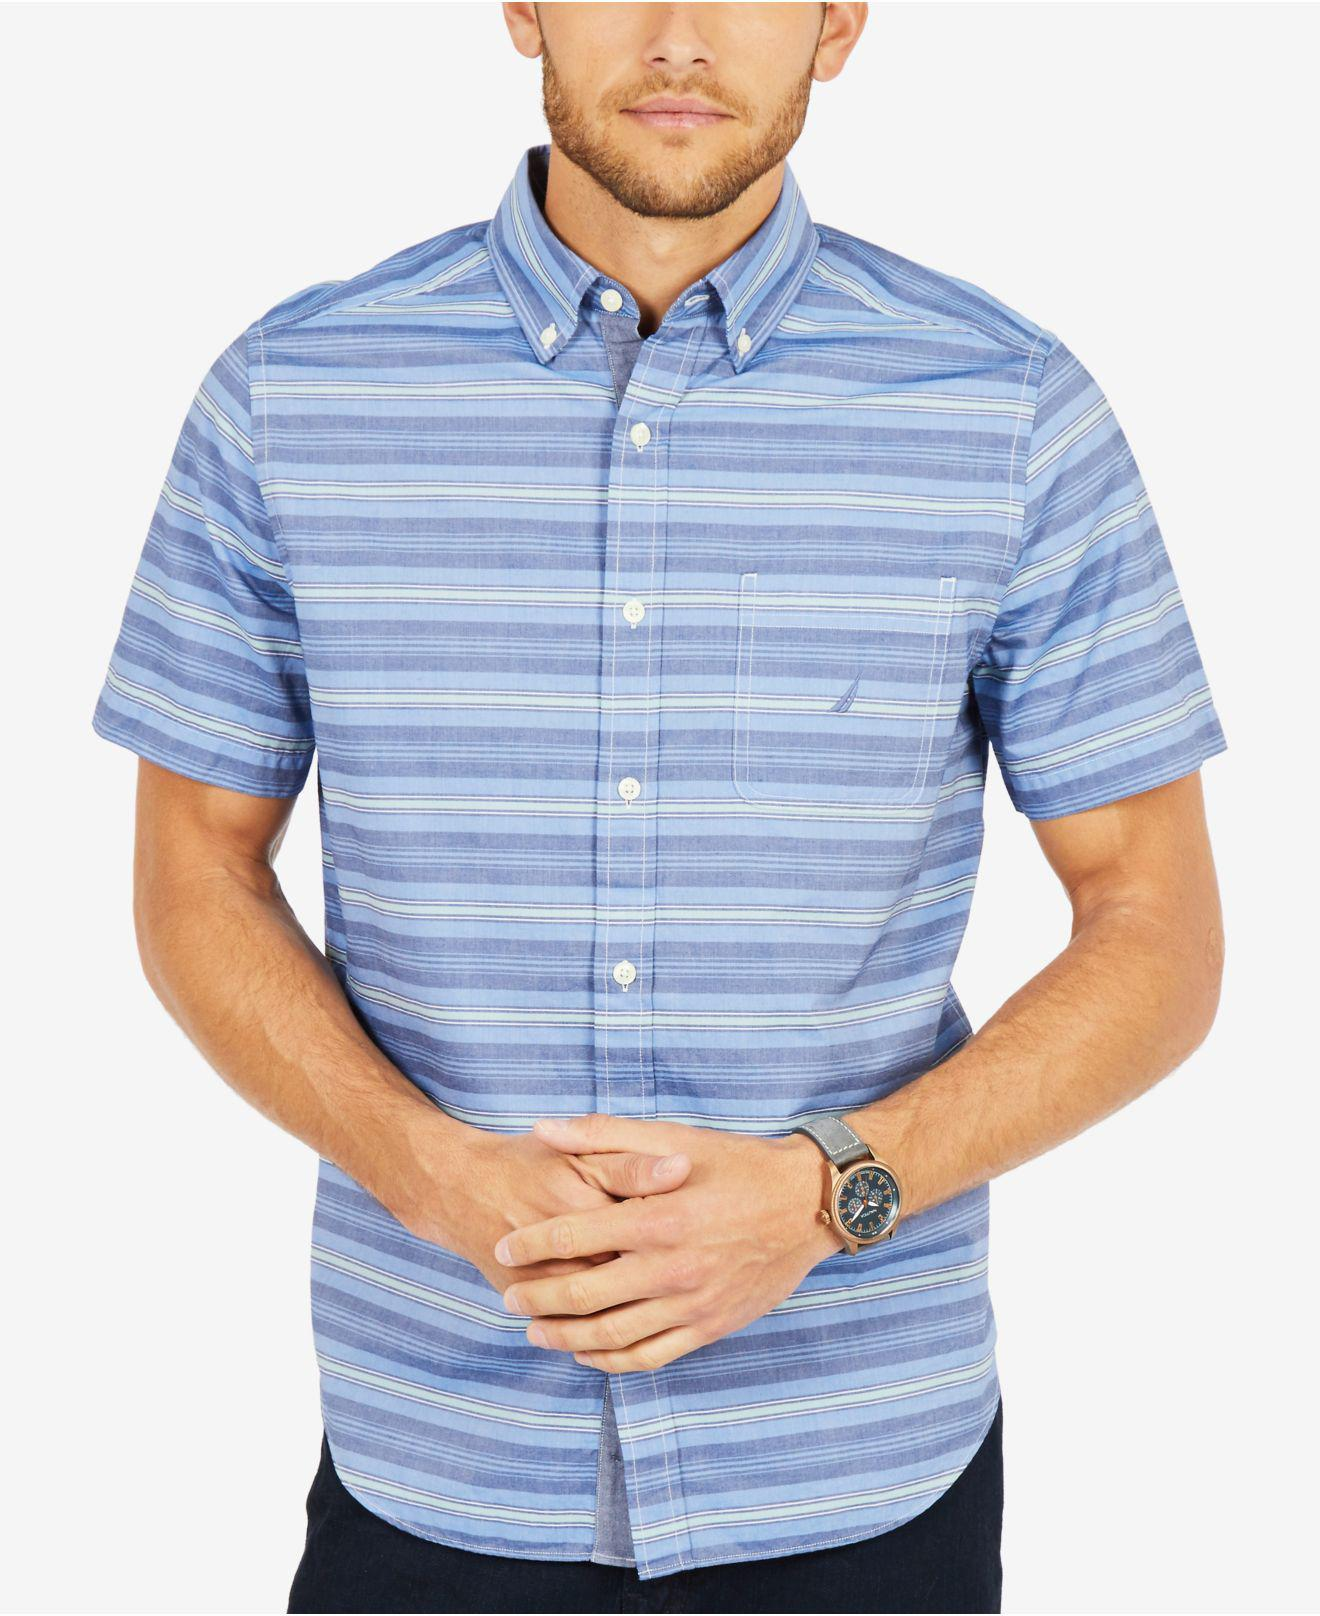 Lyst Nautica Casual Striped Classic Fit Short Sleeve Shirt In Blue